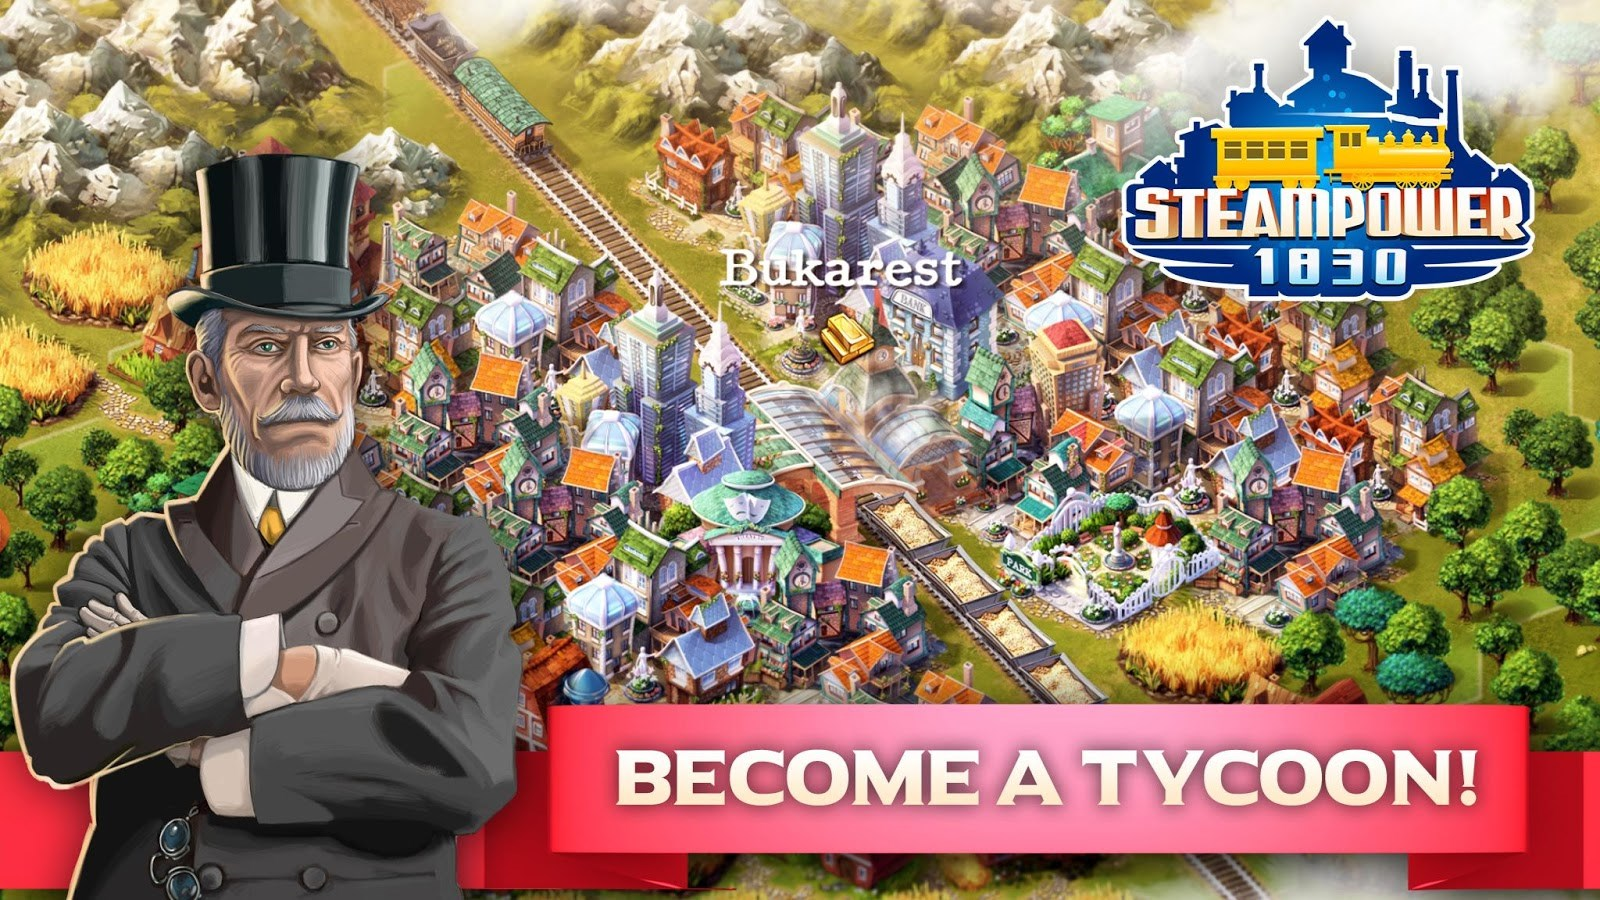 SteamPower 1830 Railroad Tycoon - Imagem 1 do software